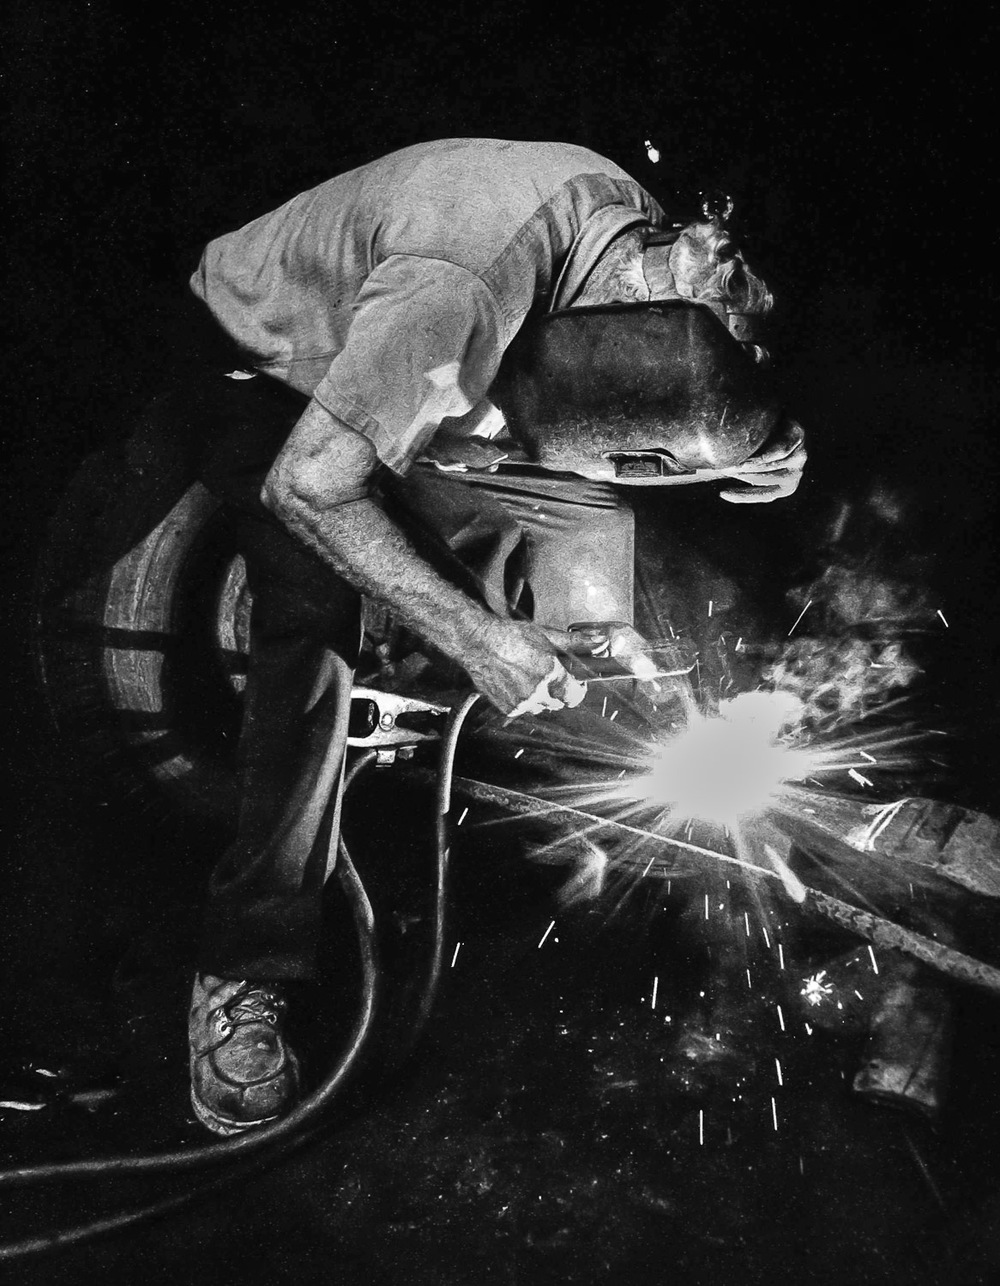 Welder-In-Mask-Welds-Frame-Arc-Light-BW.jpg